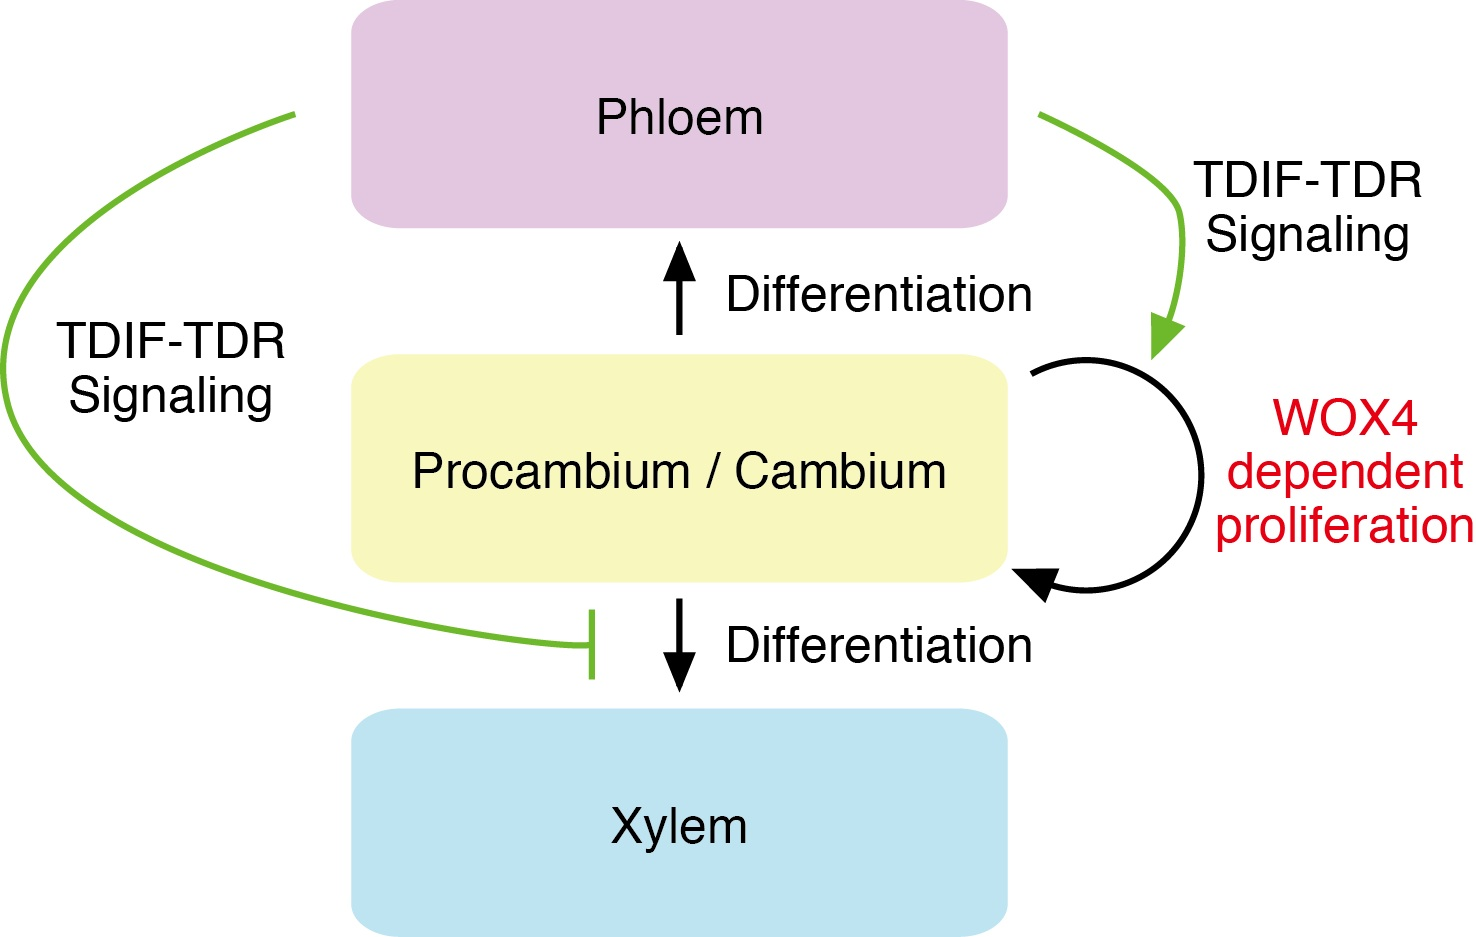 importance of xylem and phloem tissues essay Previous ib exam essay questions: unit 10 draw a plan diagram to show the arrangement of tissues in the stem of a cambium shown between xylem and phloem 2.